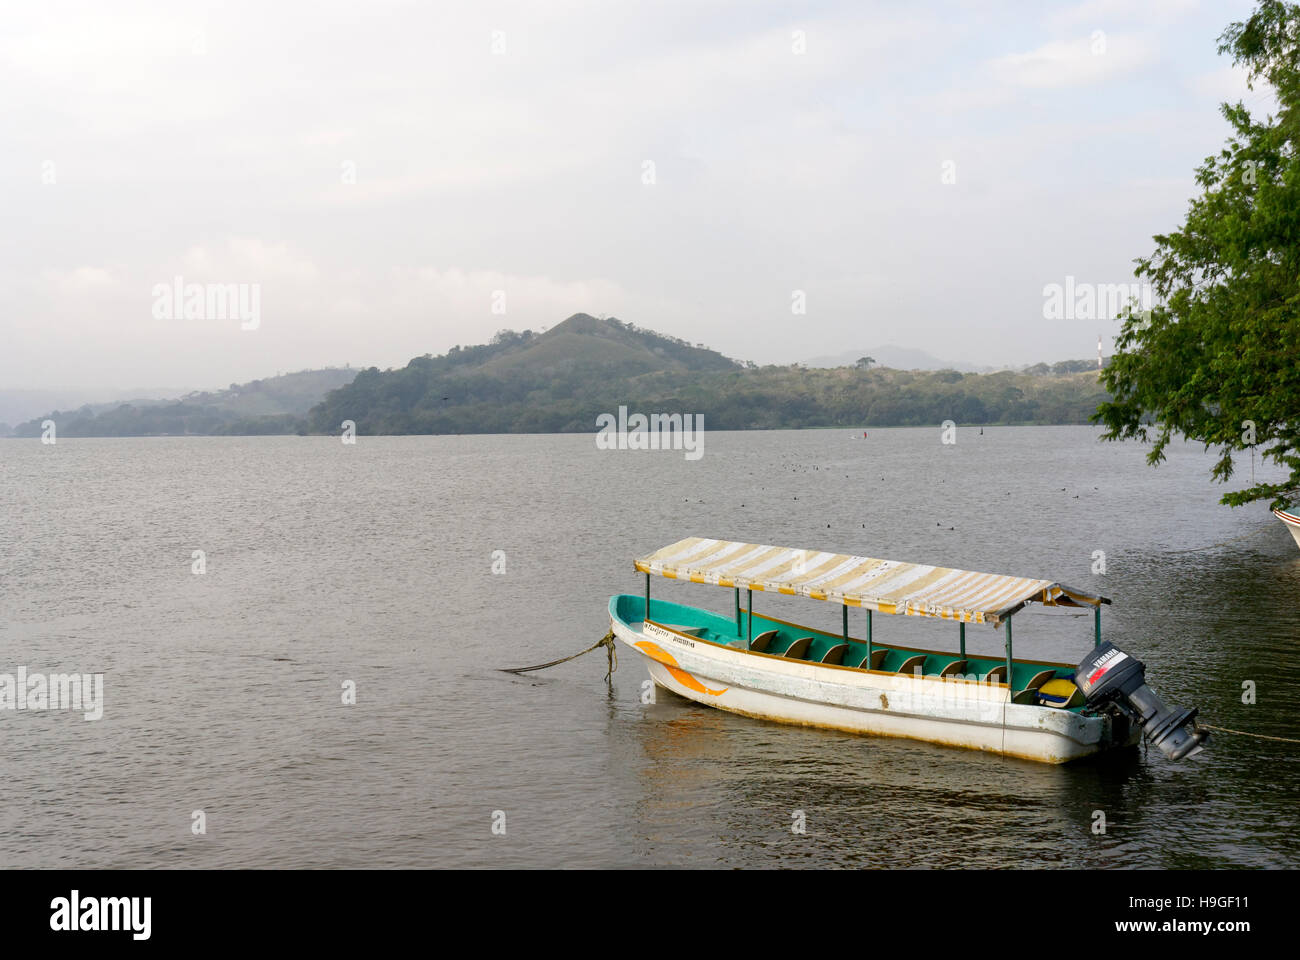 Motorized tourist launch moored on Lake Catemaco on a cloudy day, Catemaco, Veracruz, Mexico Stock Photo